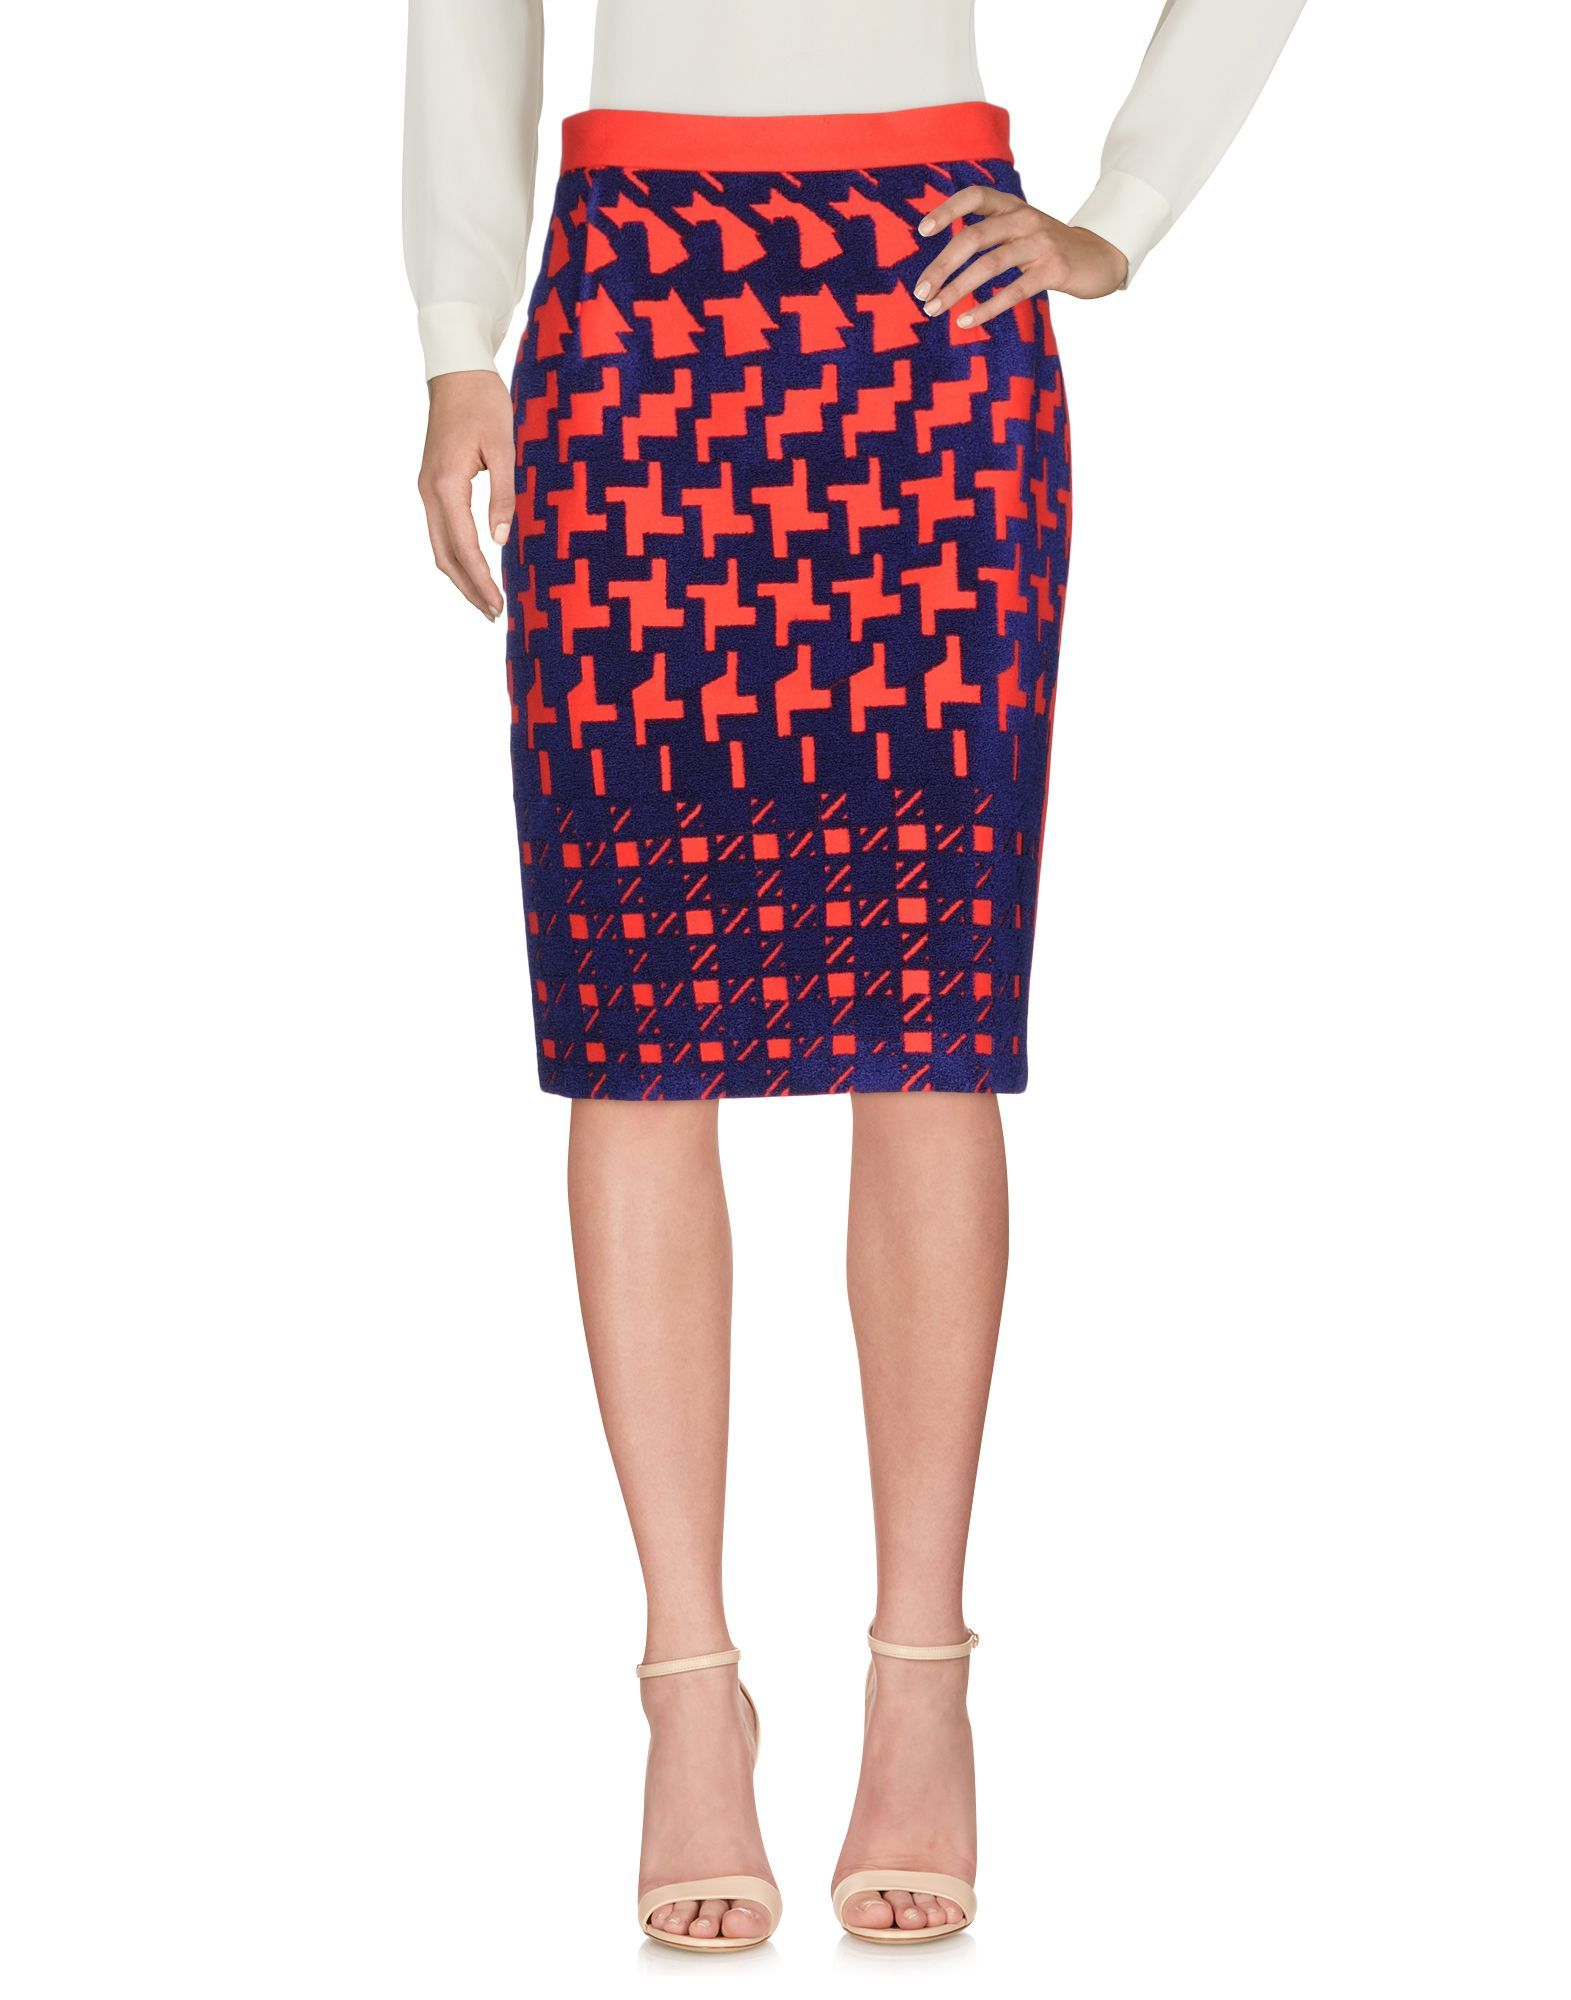 Mary Katrantzou Red Houndstooth Print Wool Skirt